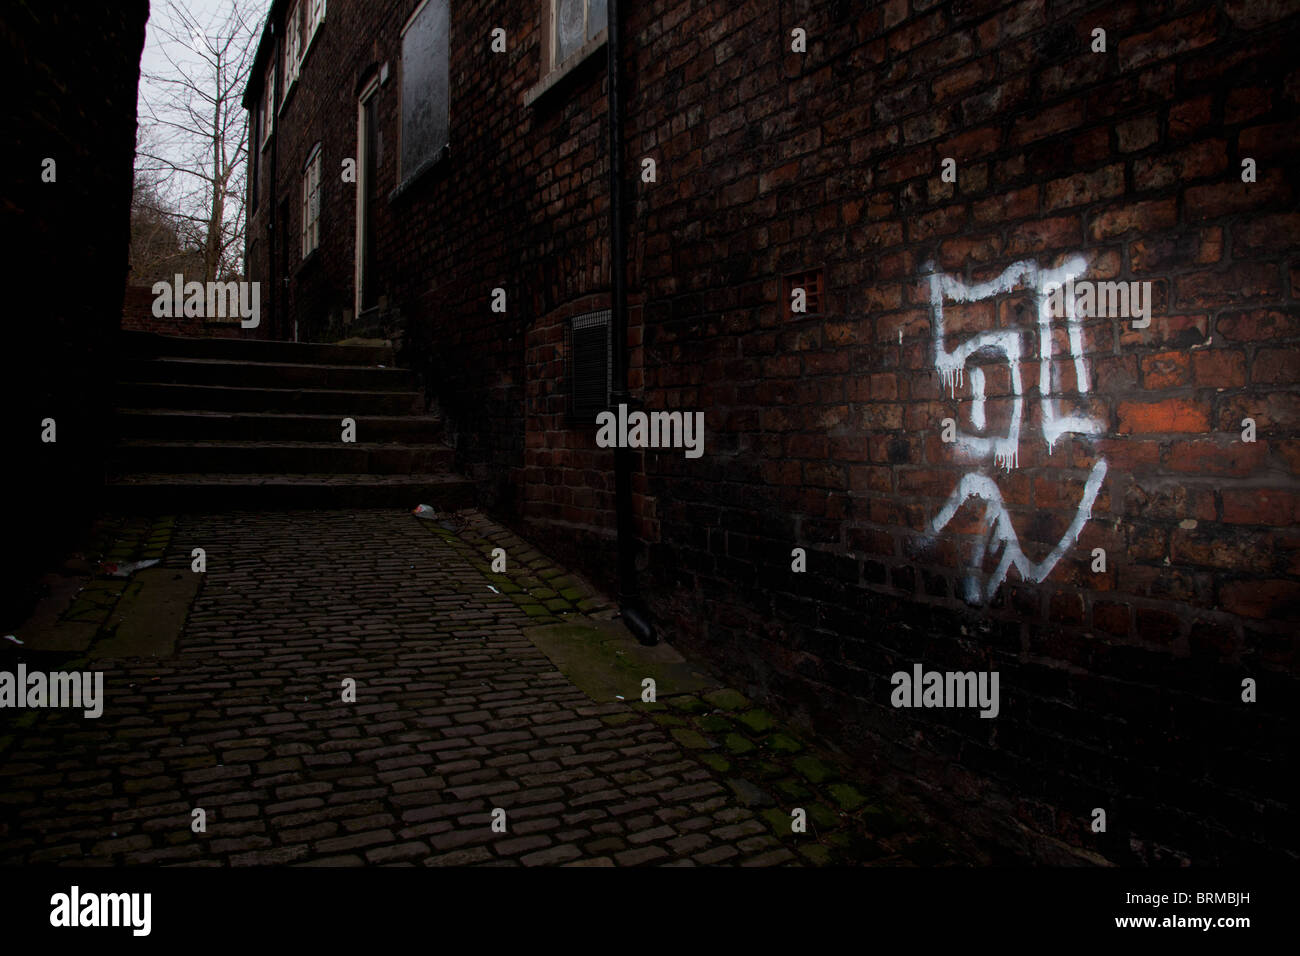 Graffiti on a red brick wall in a dark alley - Stock Image